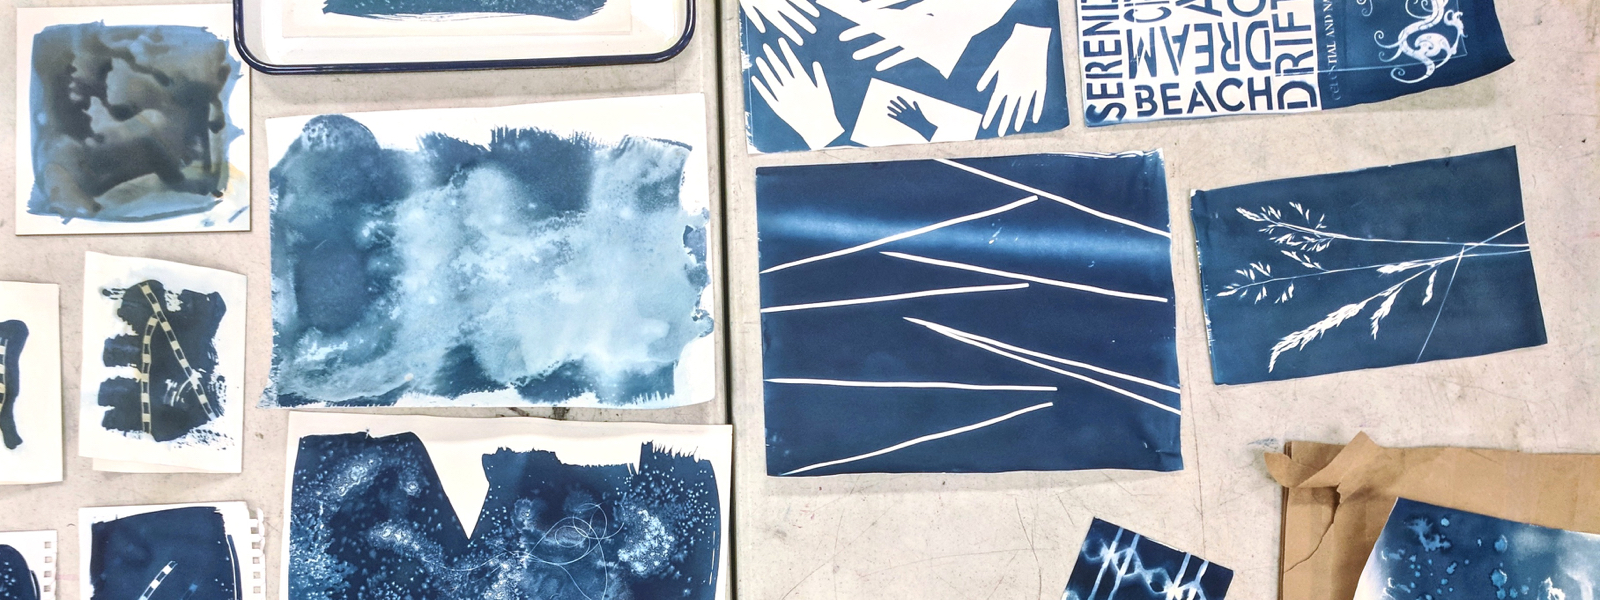 Cyanotype Workshop at Pepperwood Preserve